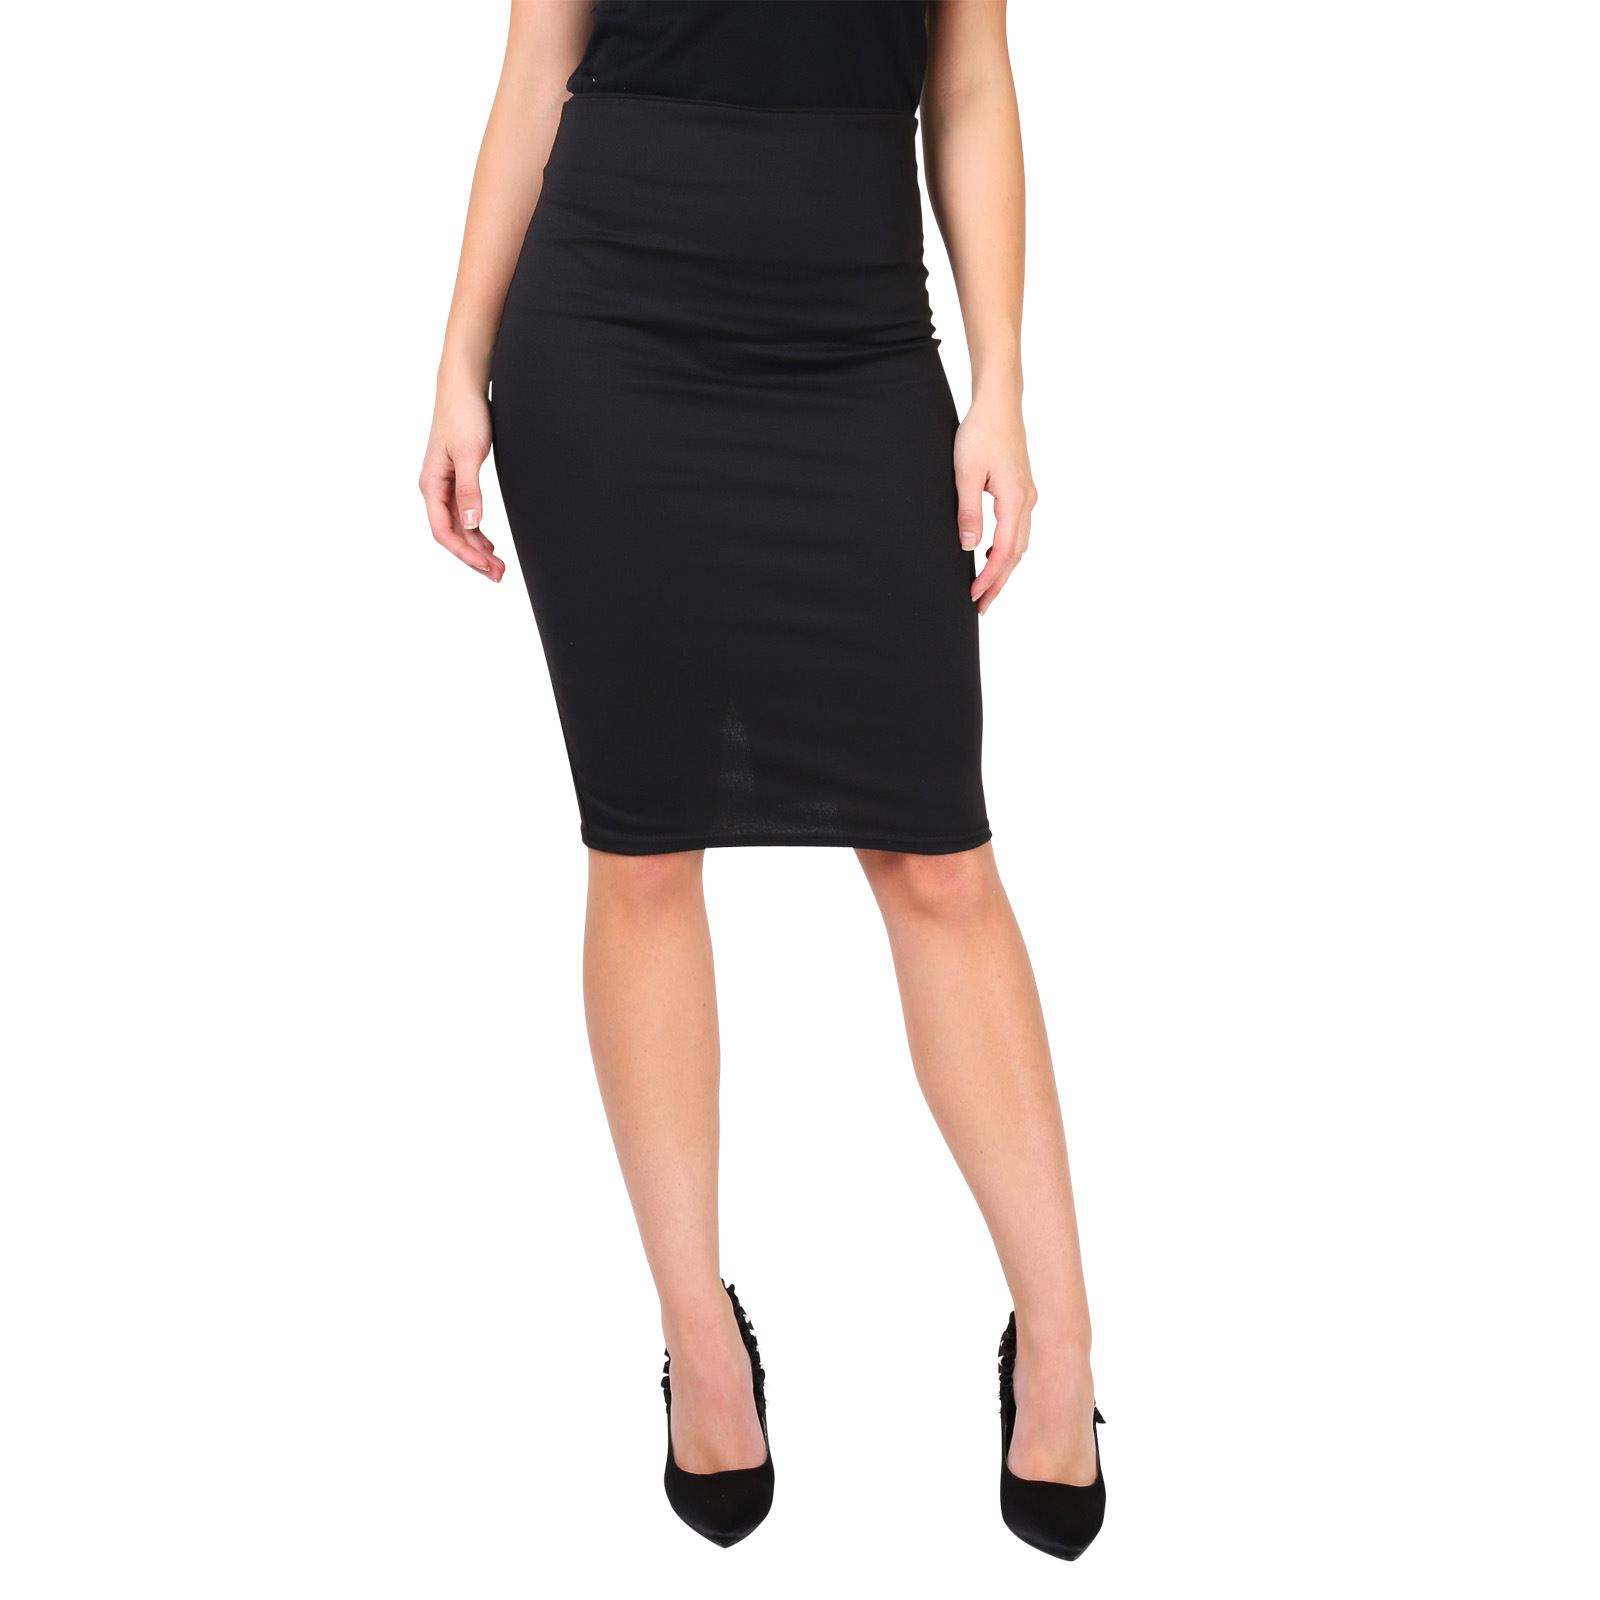 Shop Expressâ s womenâ s casual skirts for the latest styles, from maxi skirts & pencil skirts to midi skirts & denim skirts. Available in a wide range of colors, patterns, and fabric, our skirts are perfect for a variety of occasions. Whether youâ re going for a stroll around the city or grabbing dinner with friends.